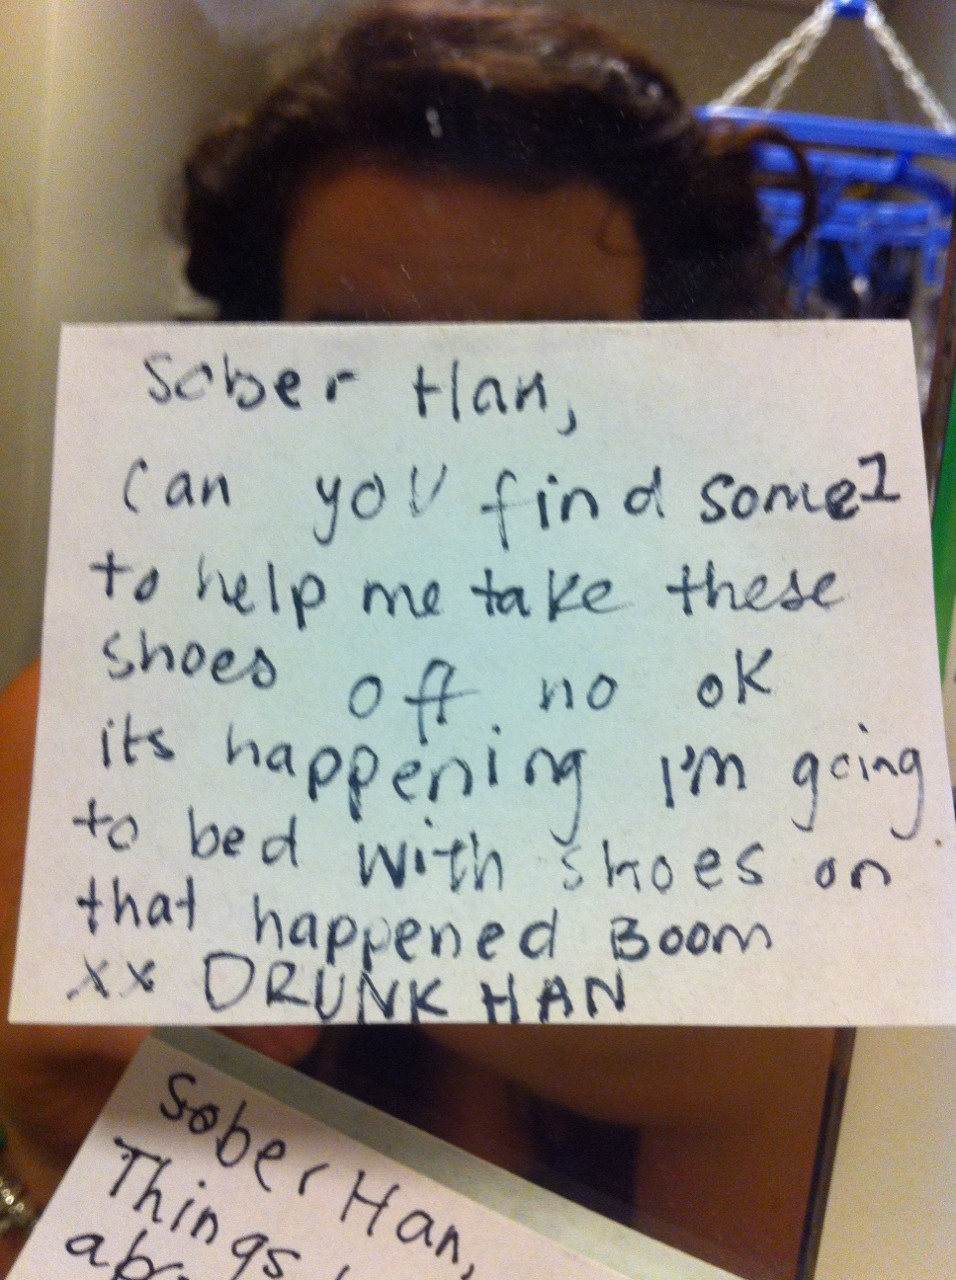 This girl leaves hilarious notes for herself when she's drunk, so she'll know what happened when she sobers up.